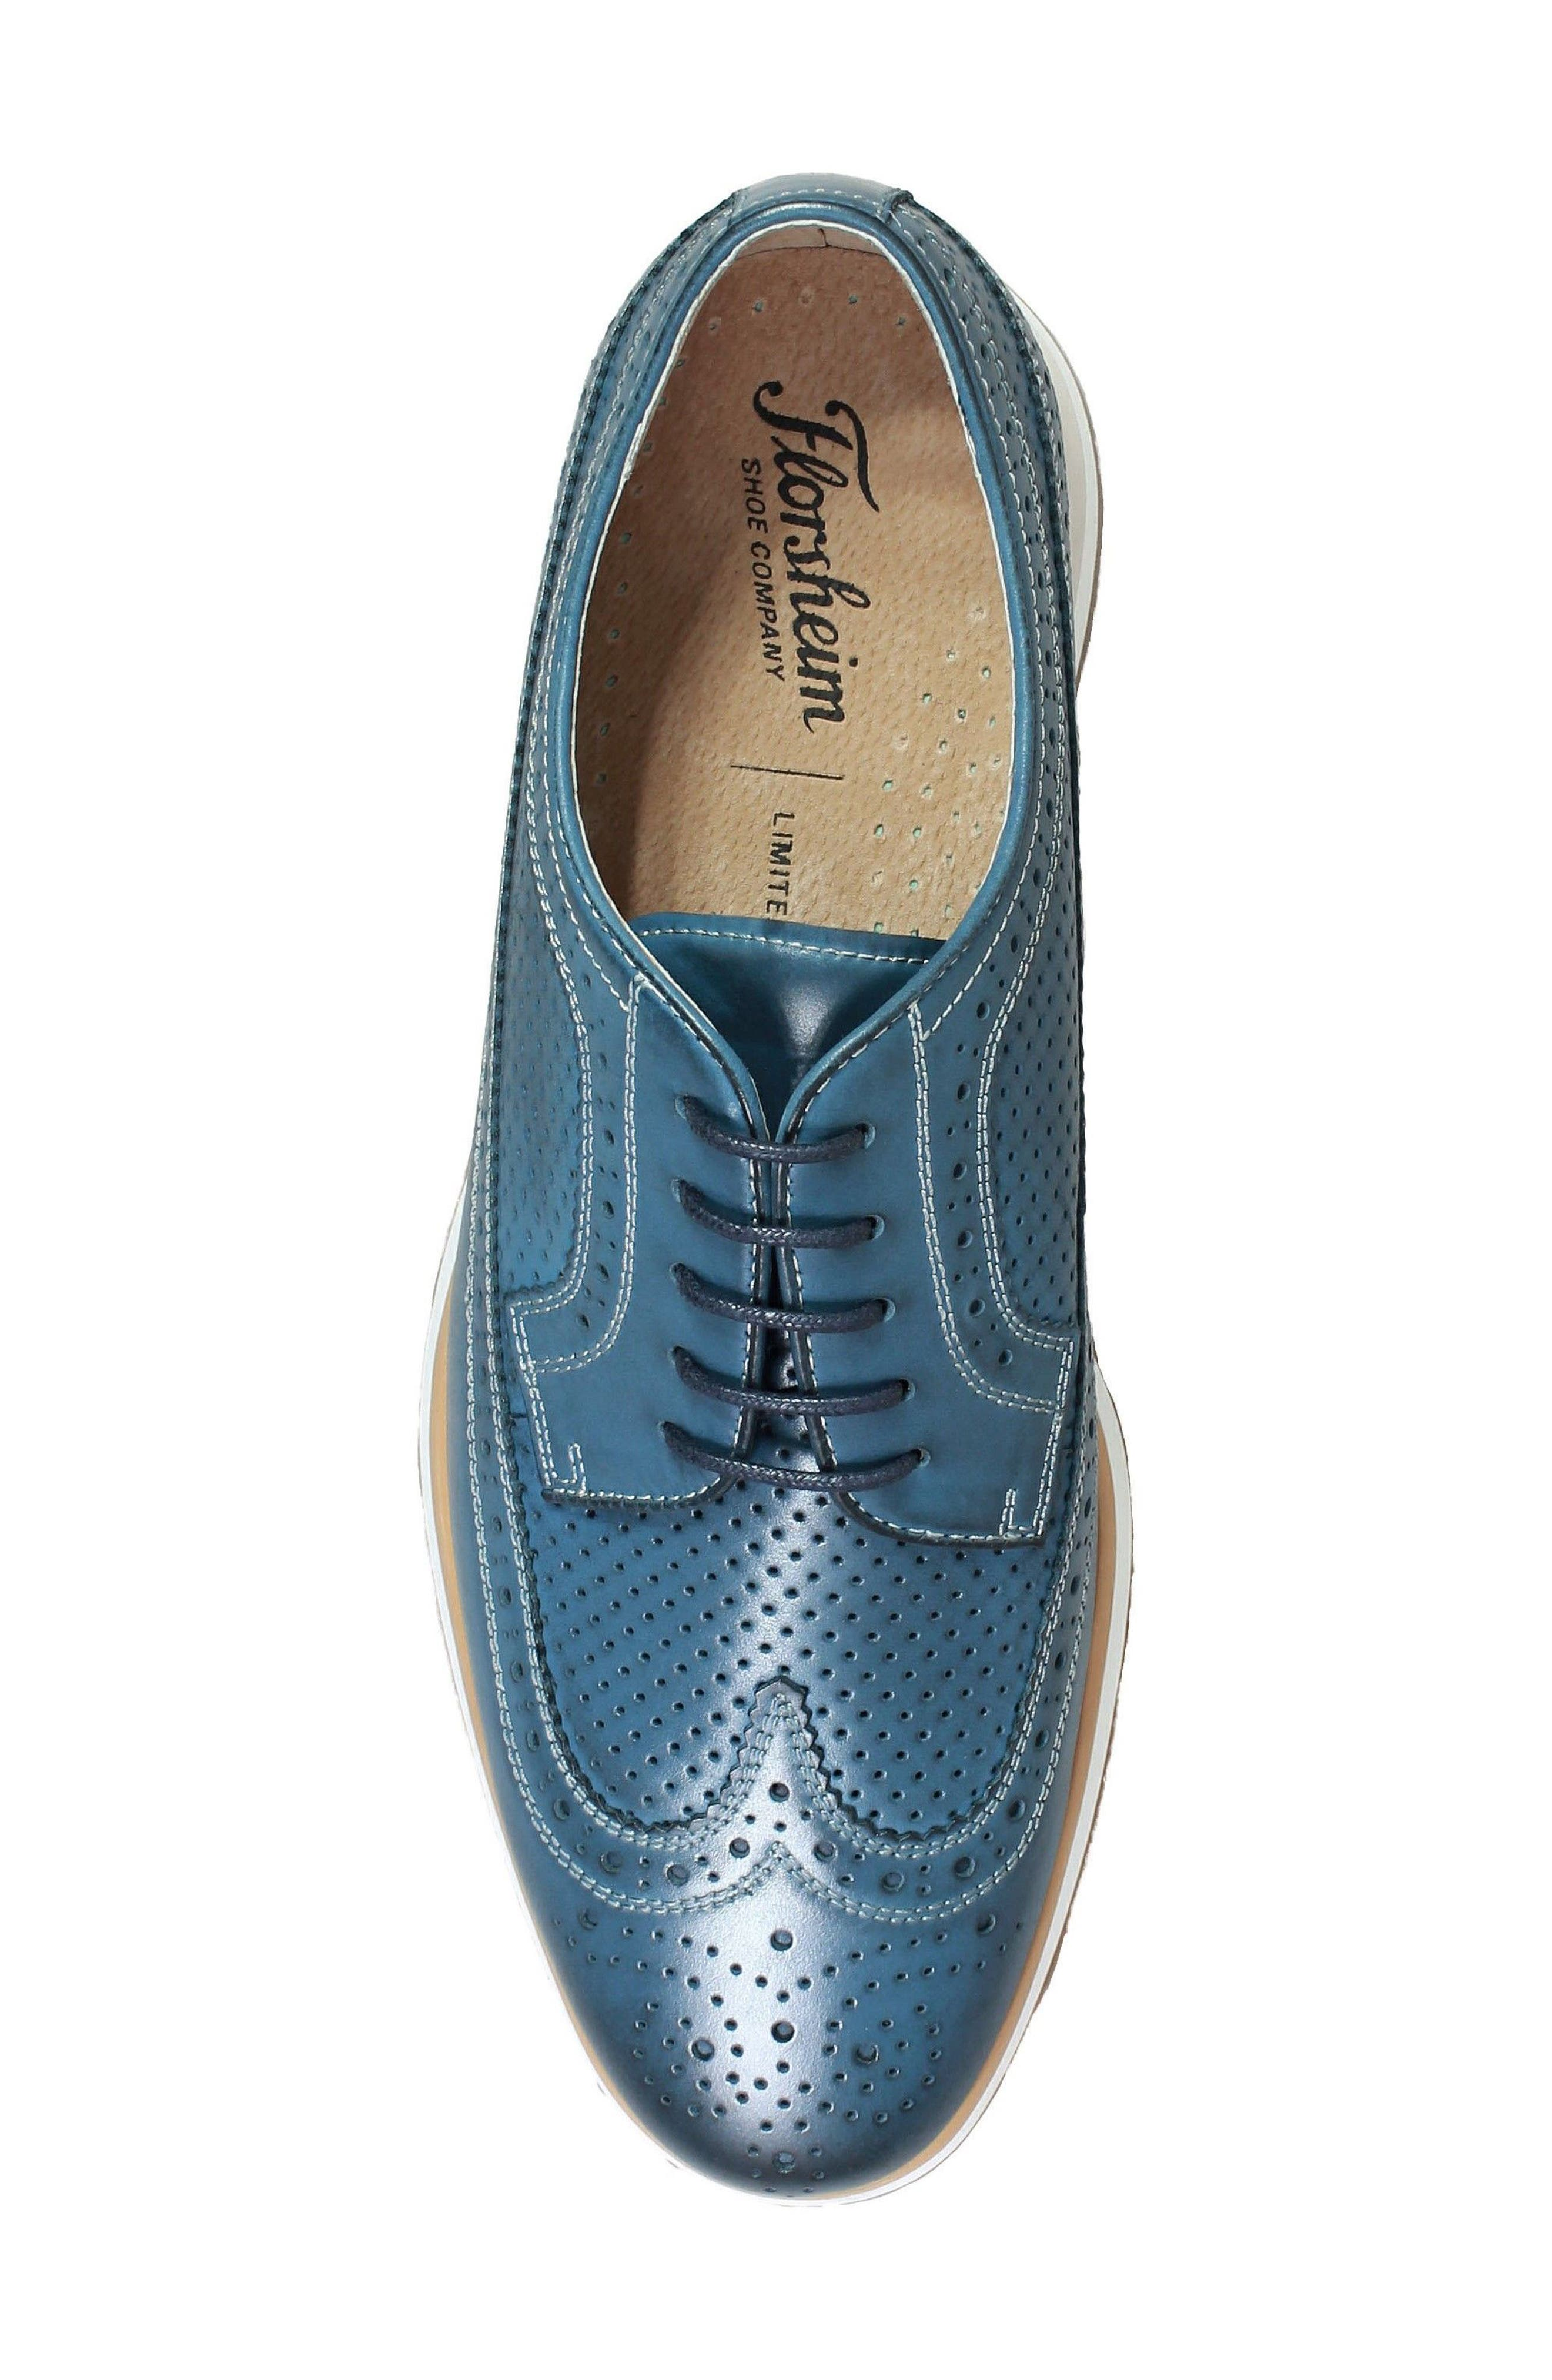 Limited Flux Perforated Wingtip Derby,                             Alternate thumbnail 5, color,                             Indigo Leather